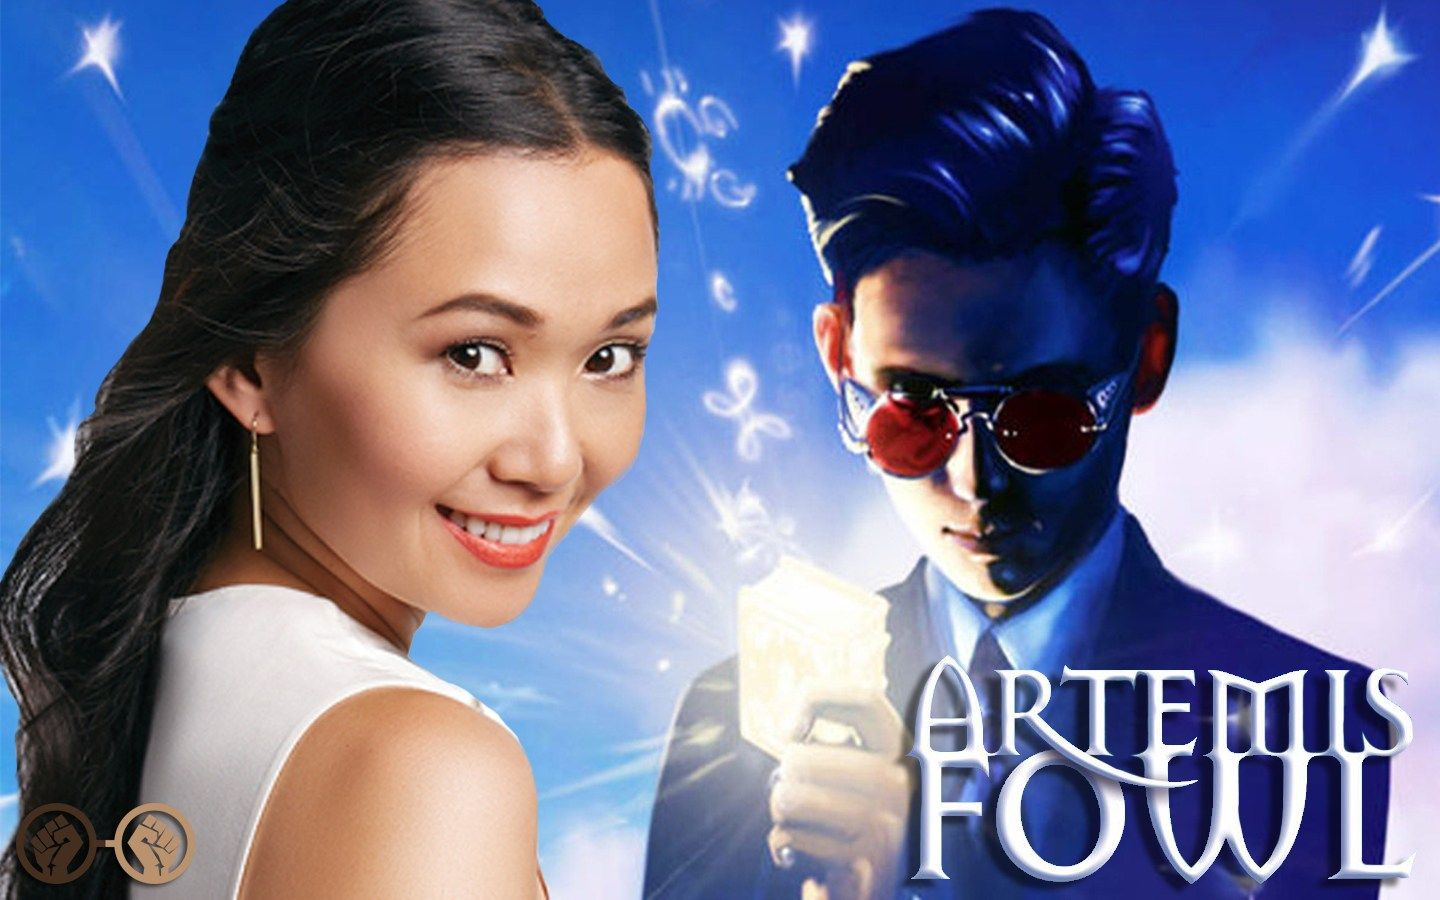 Disney's 'Artemis Fowl' Begins Production, Hong Chau Joins Star